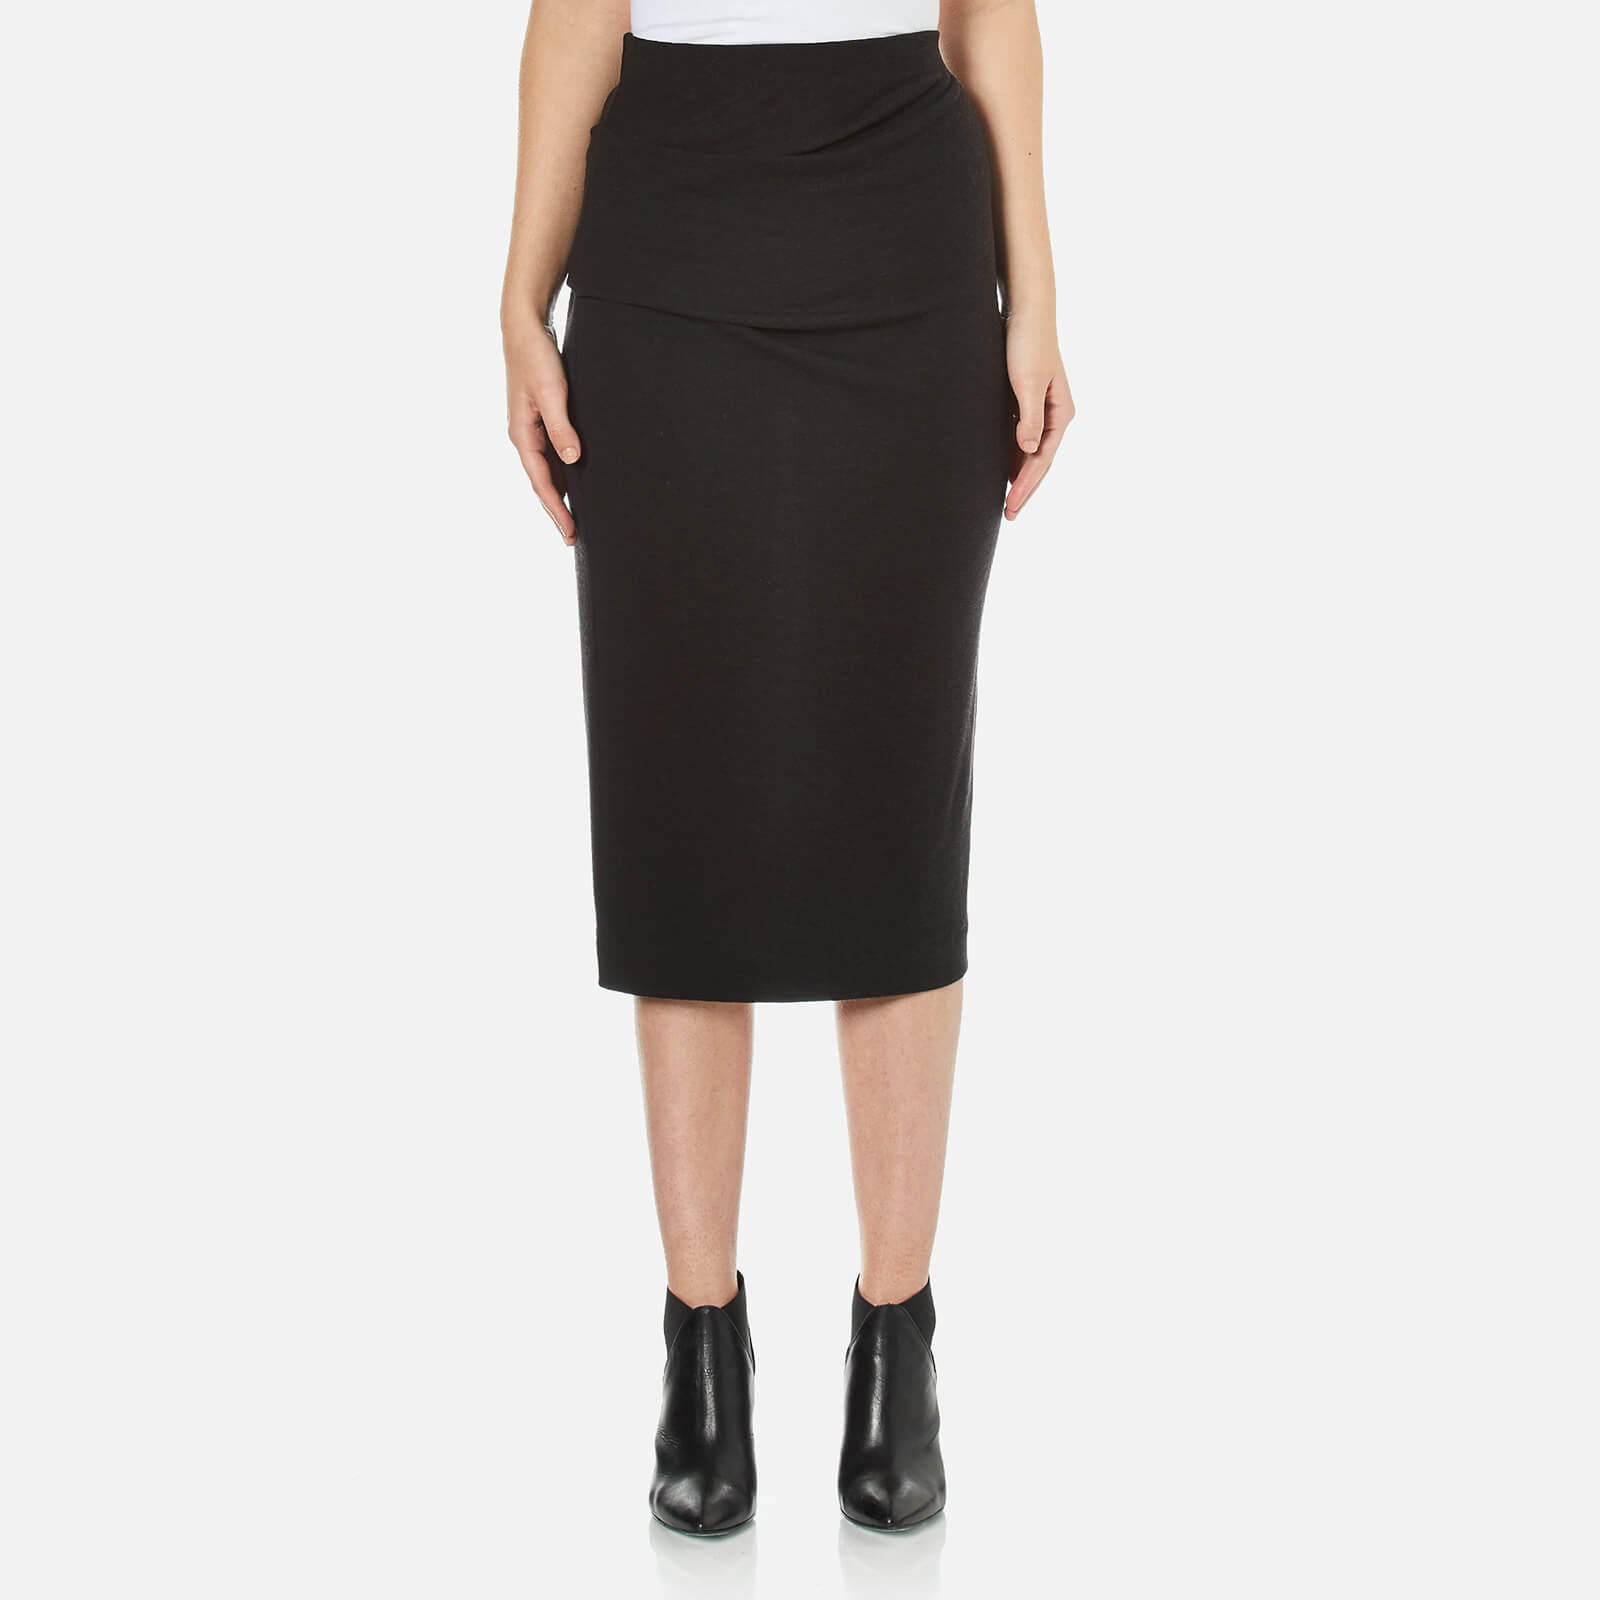 98172d2255 By Malene Birger Women's Reoria Skirt - Black - Free UK Delivery over £50